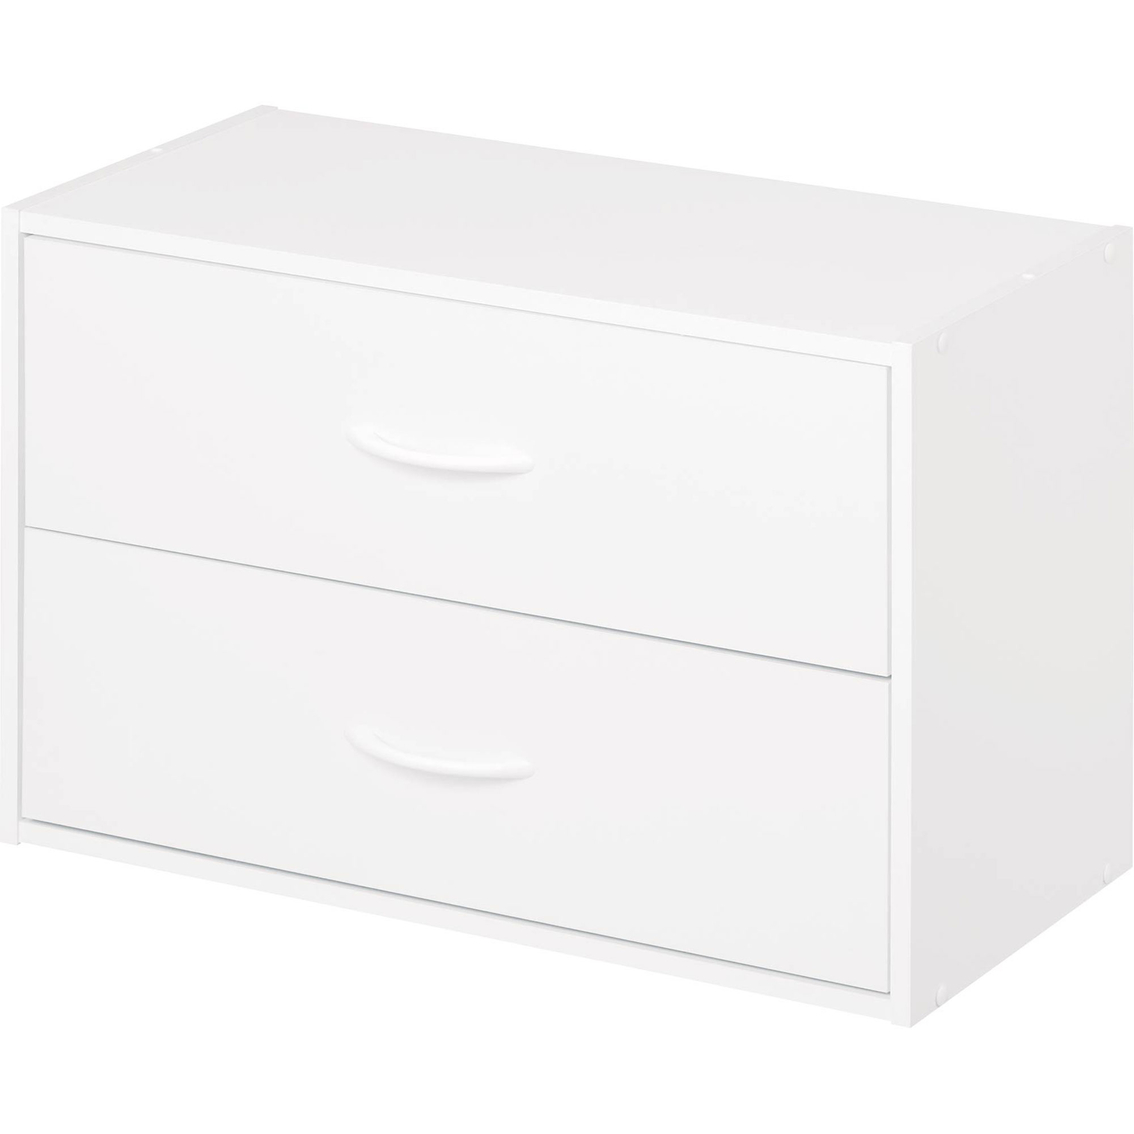 closet of mobilemonitors drawer ikea hemnes dresser drawers closetmaid home article intended chest stunning grey clips with shelving cm tag for maid